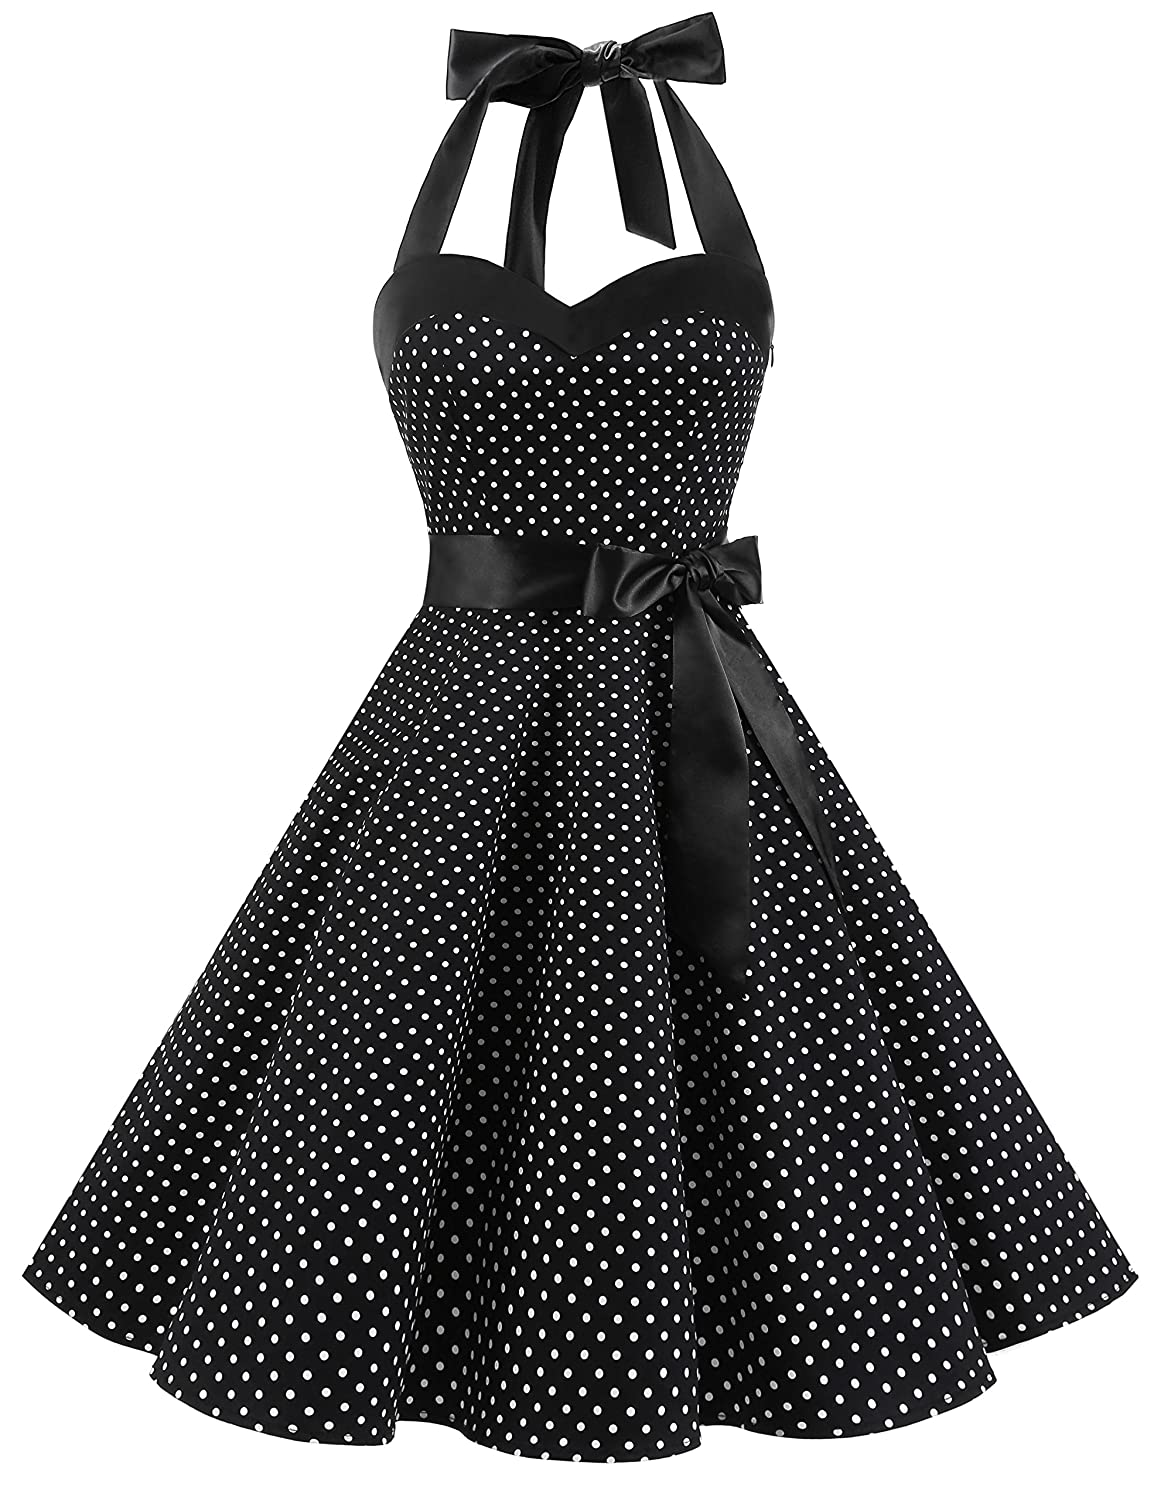 TALLA 3XL. Dresstells® Halter 50s Rockabilly Polka Dots Audrey Dress Retro Cocktail Dress Black Small White Dot 3XL